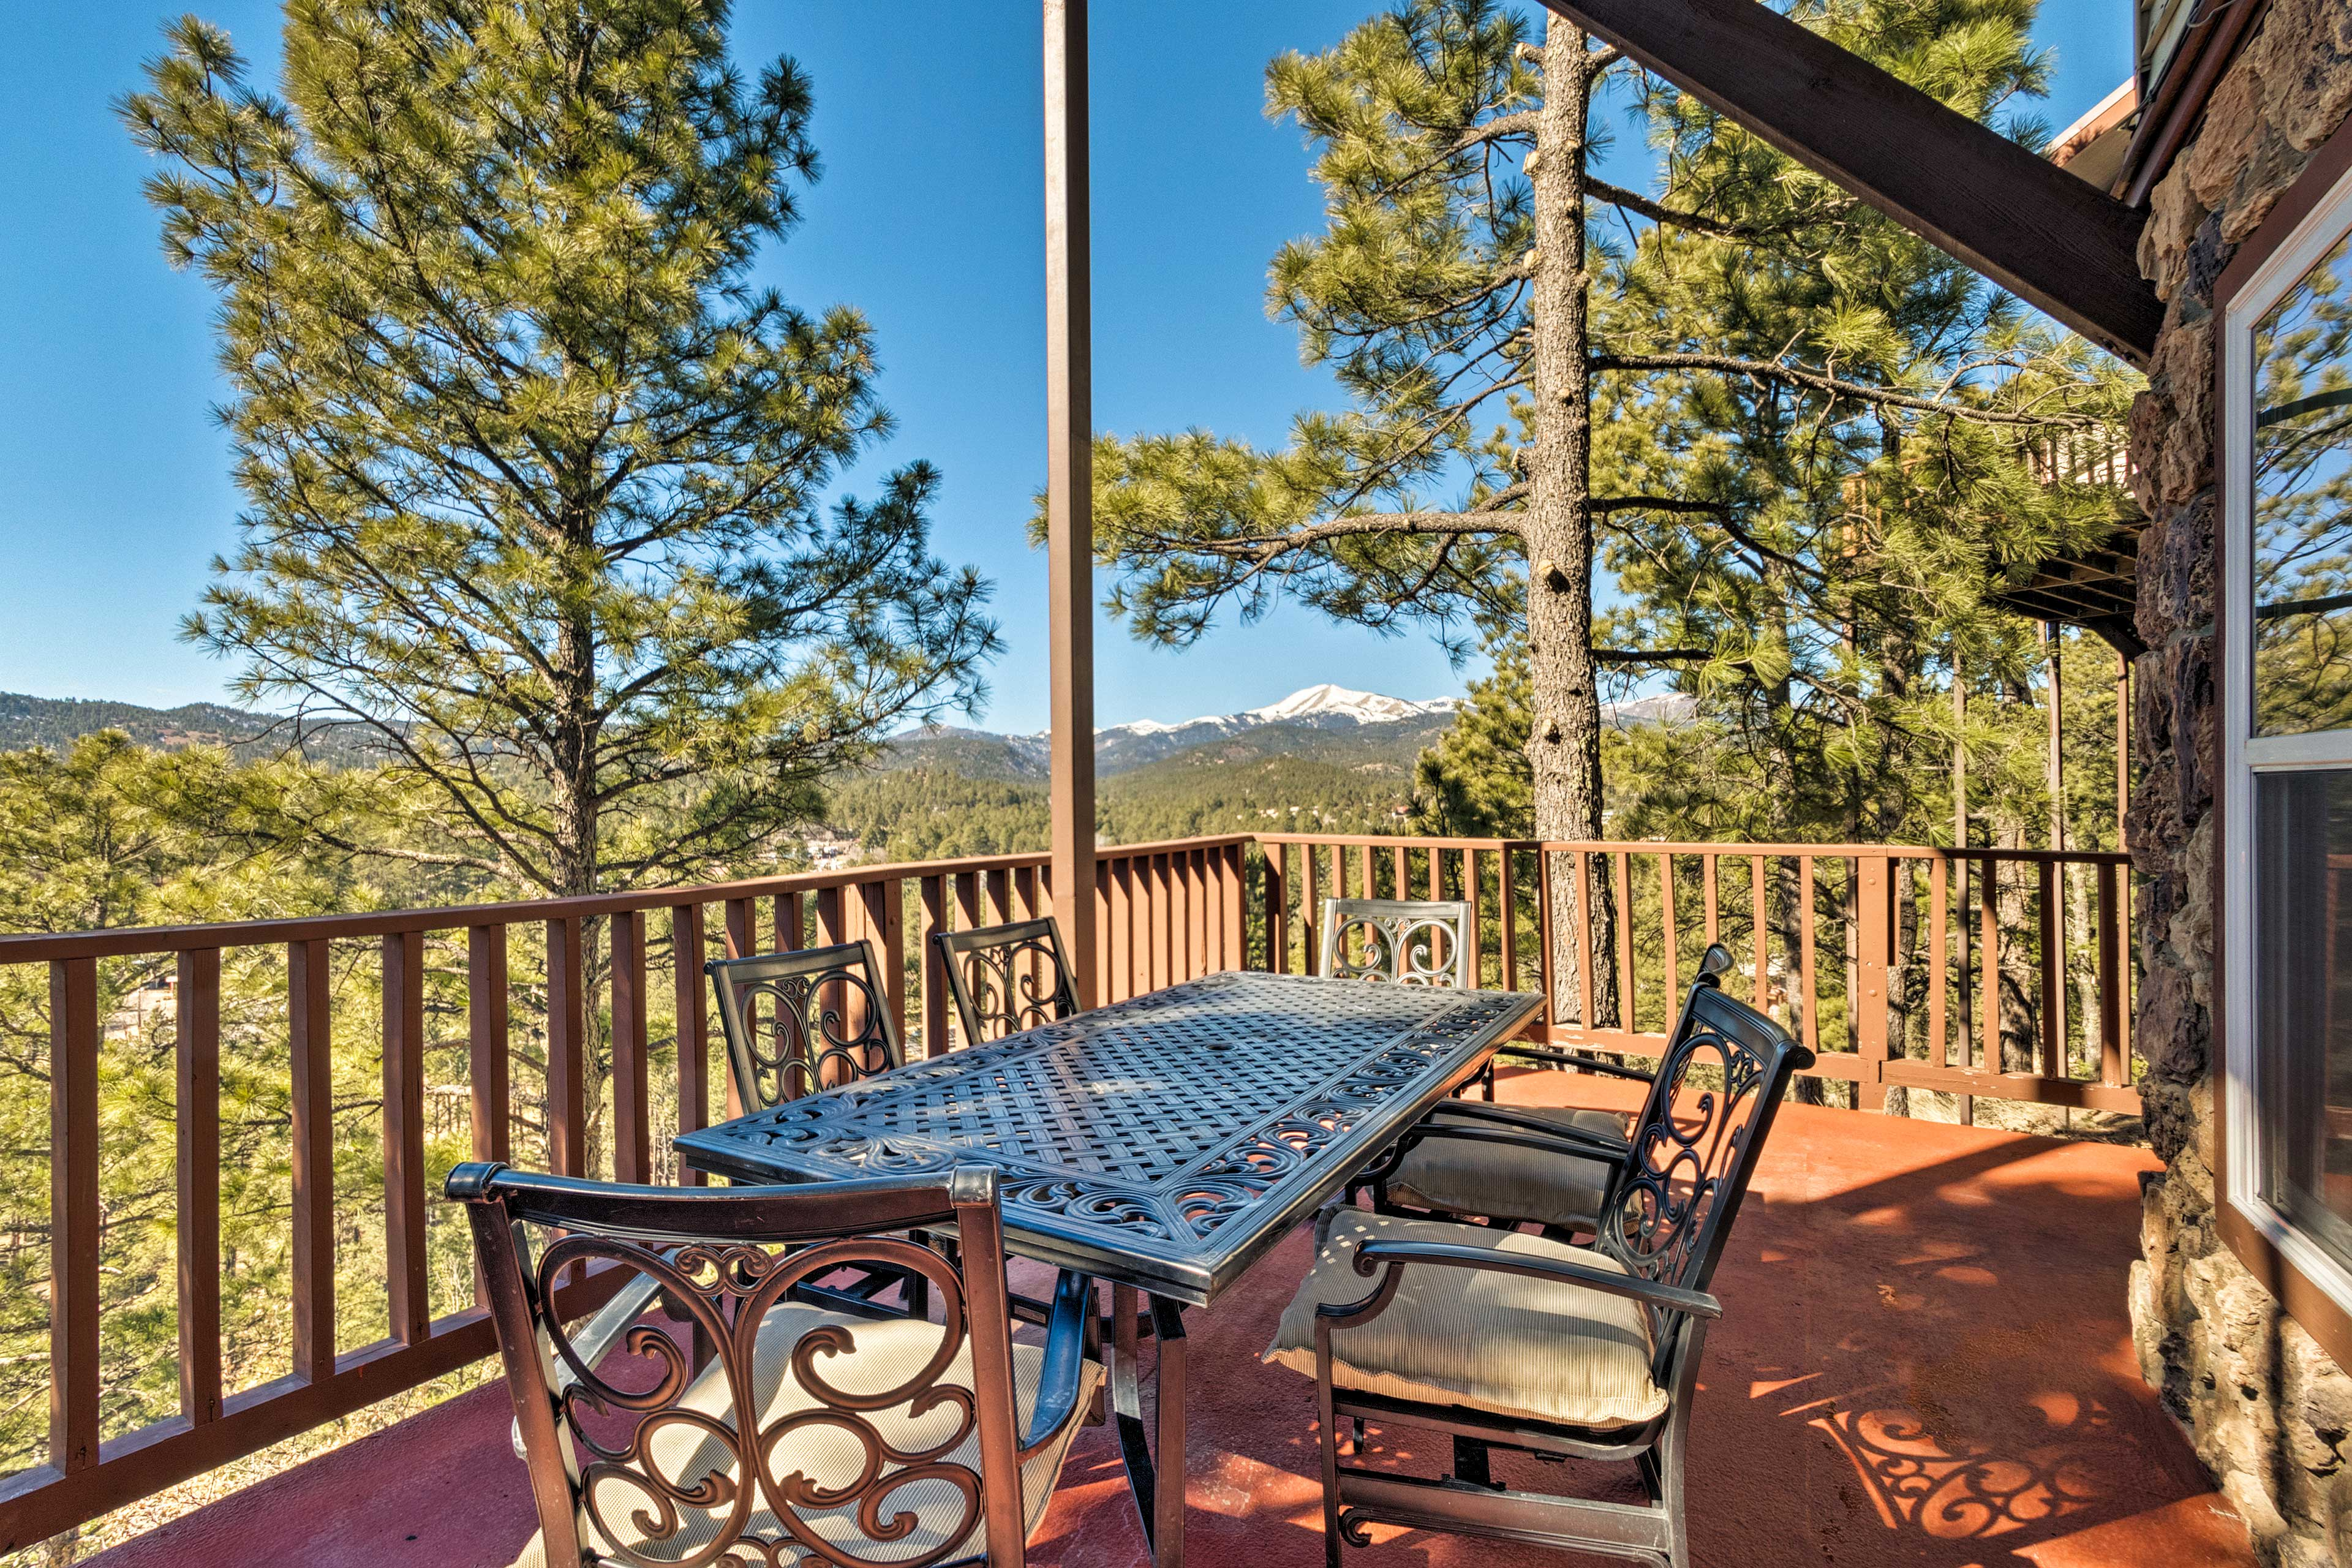 Feast on the lower deck and marvel at the mountain views.